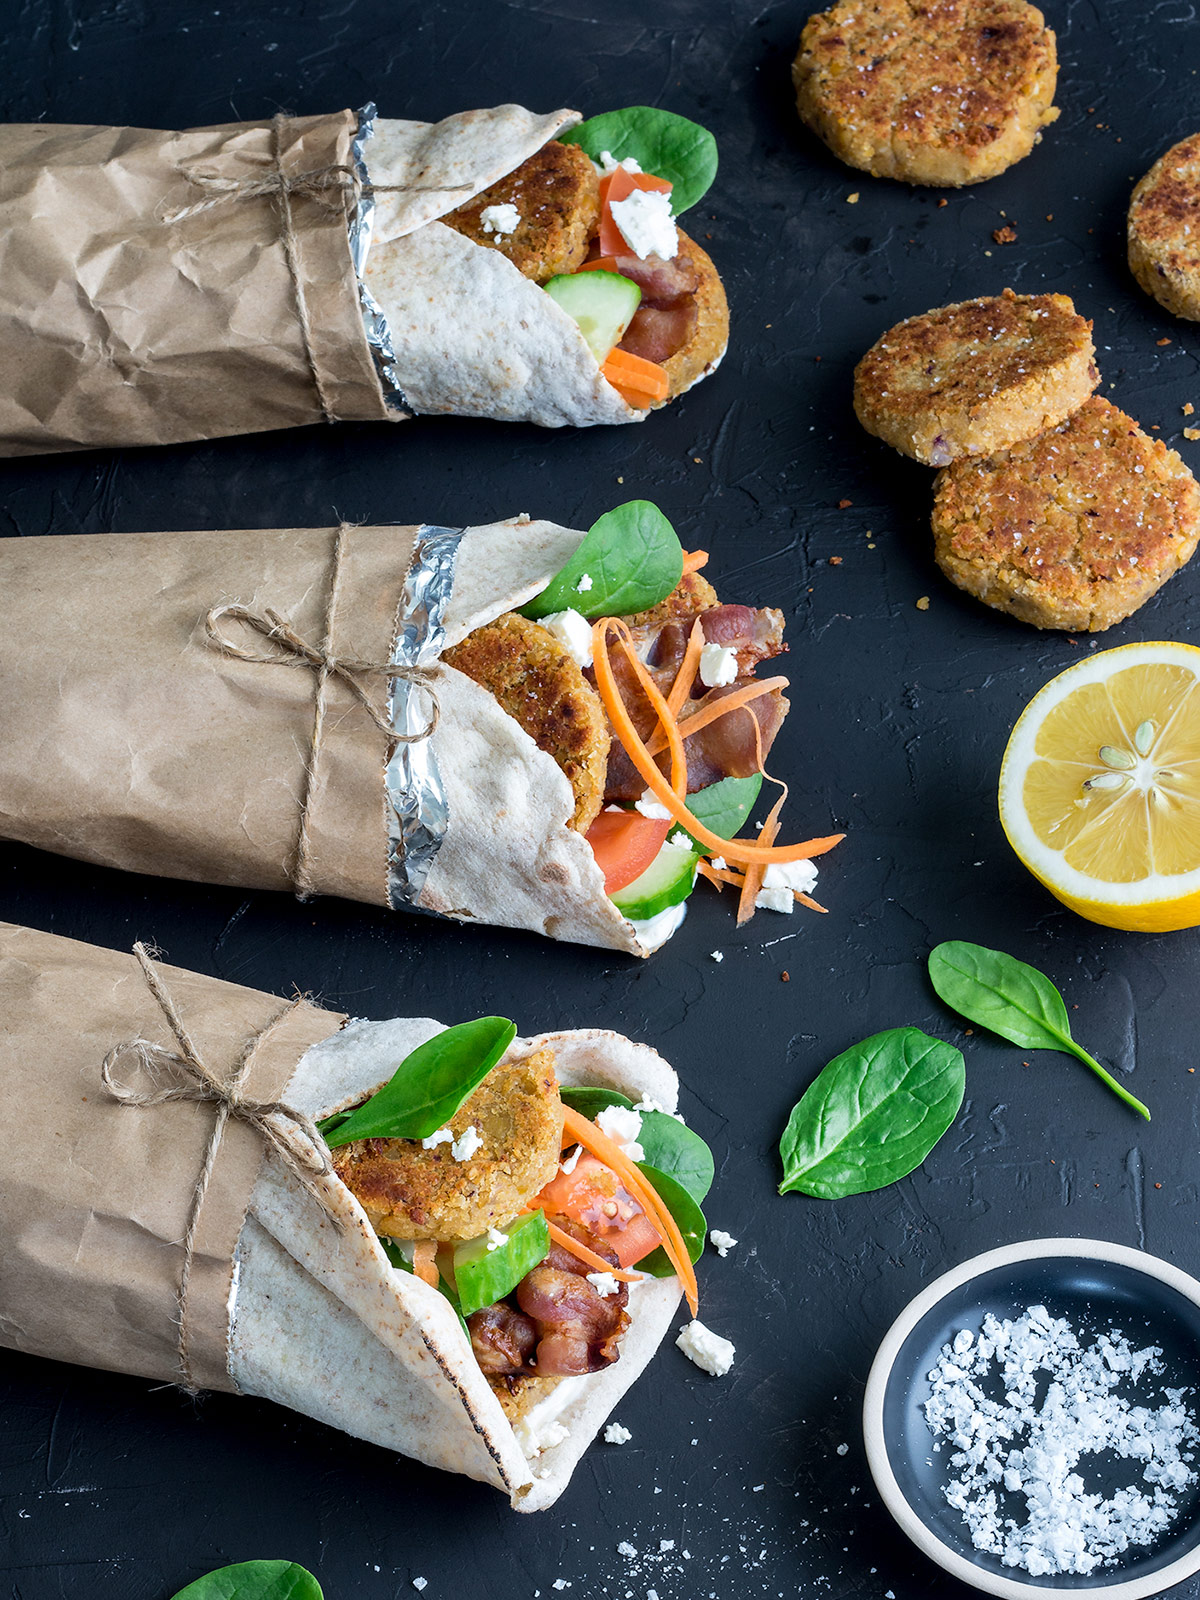 Homemade falafel kebabs are an easy, quick dinner. Make them as a vegetarian meal 